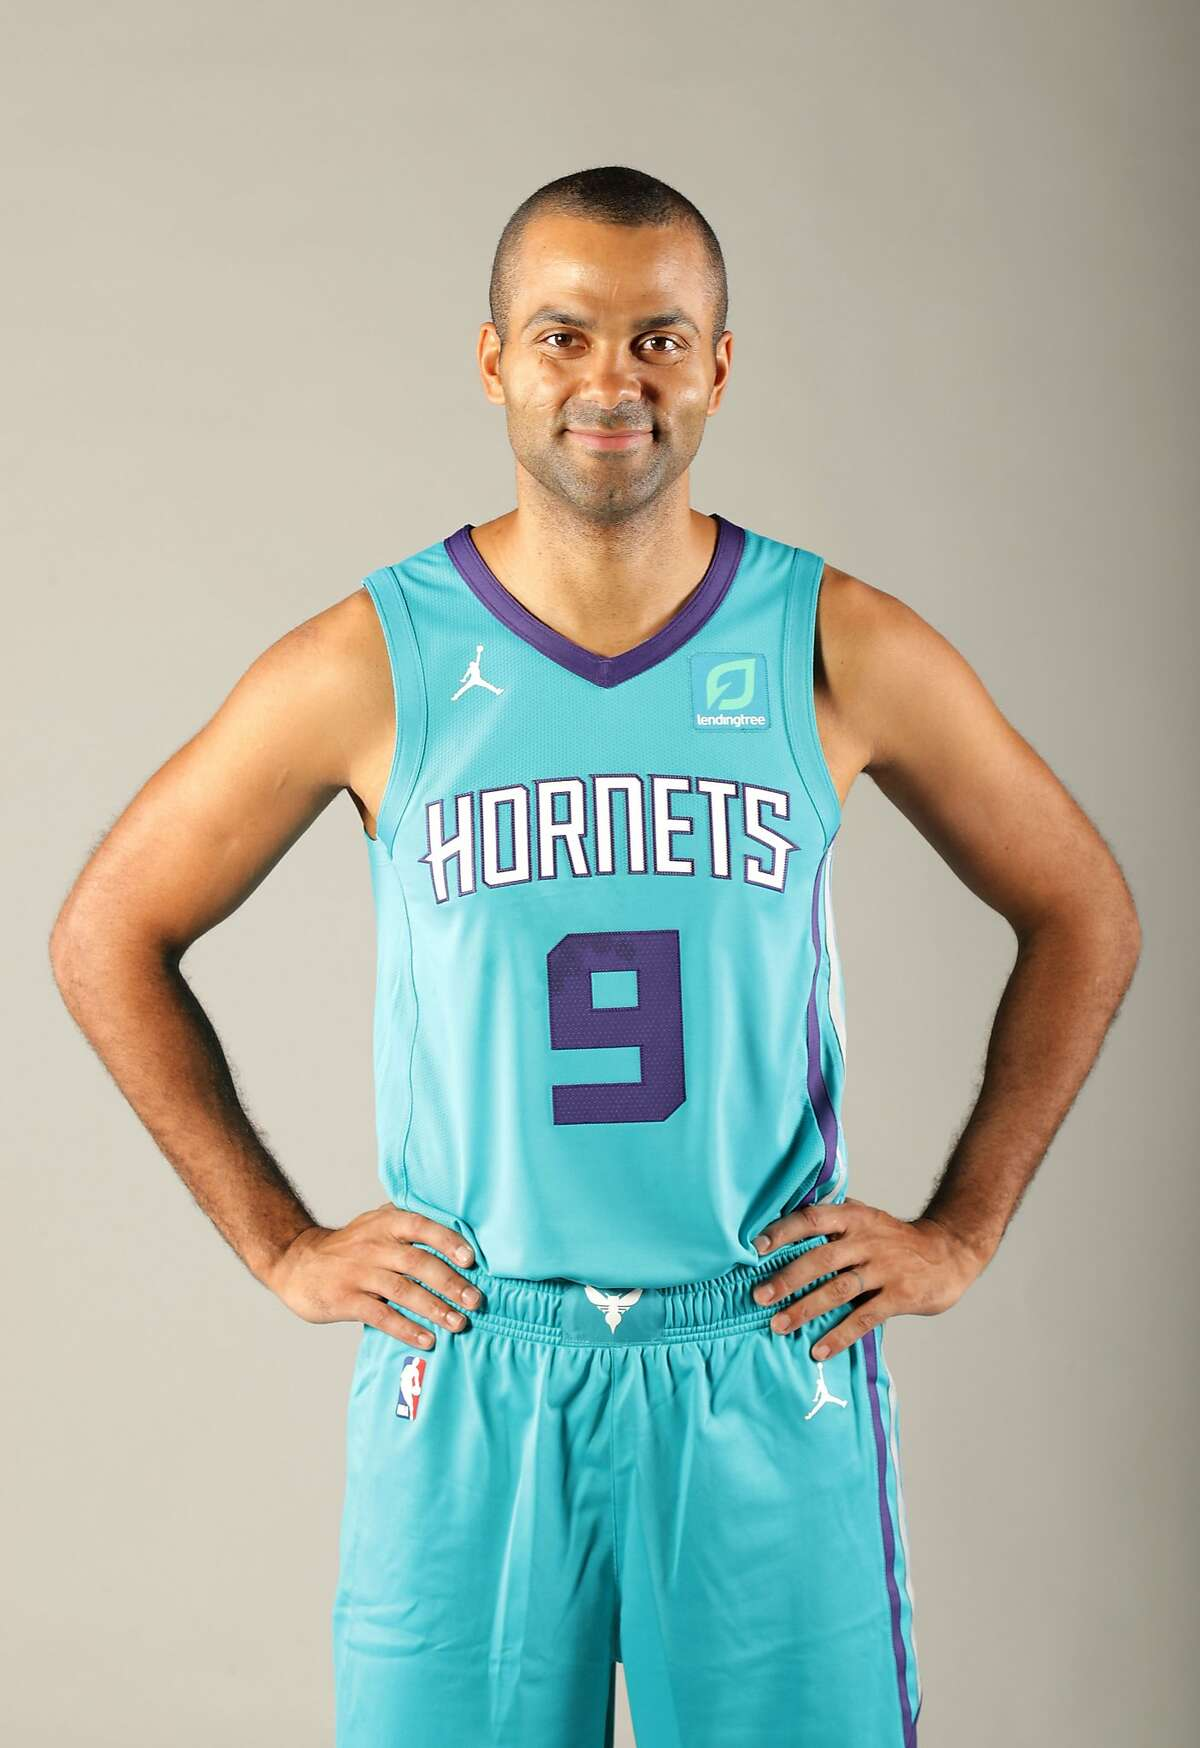 Jan. 14: Hornets vs. Spurs - Ticketmaster Lowest-priced single ticket  Sec. 203, row 12: $23 (verified resale) Sec. 220, row 14: $25 (standard admission) Highest-priced single ticket Sec. 104, row 30: $625 (verified resale) Sec. 4, row 11: $290 (standard admission)